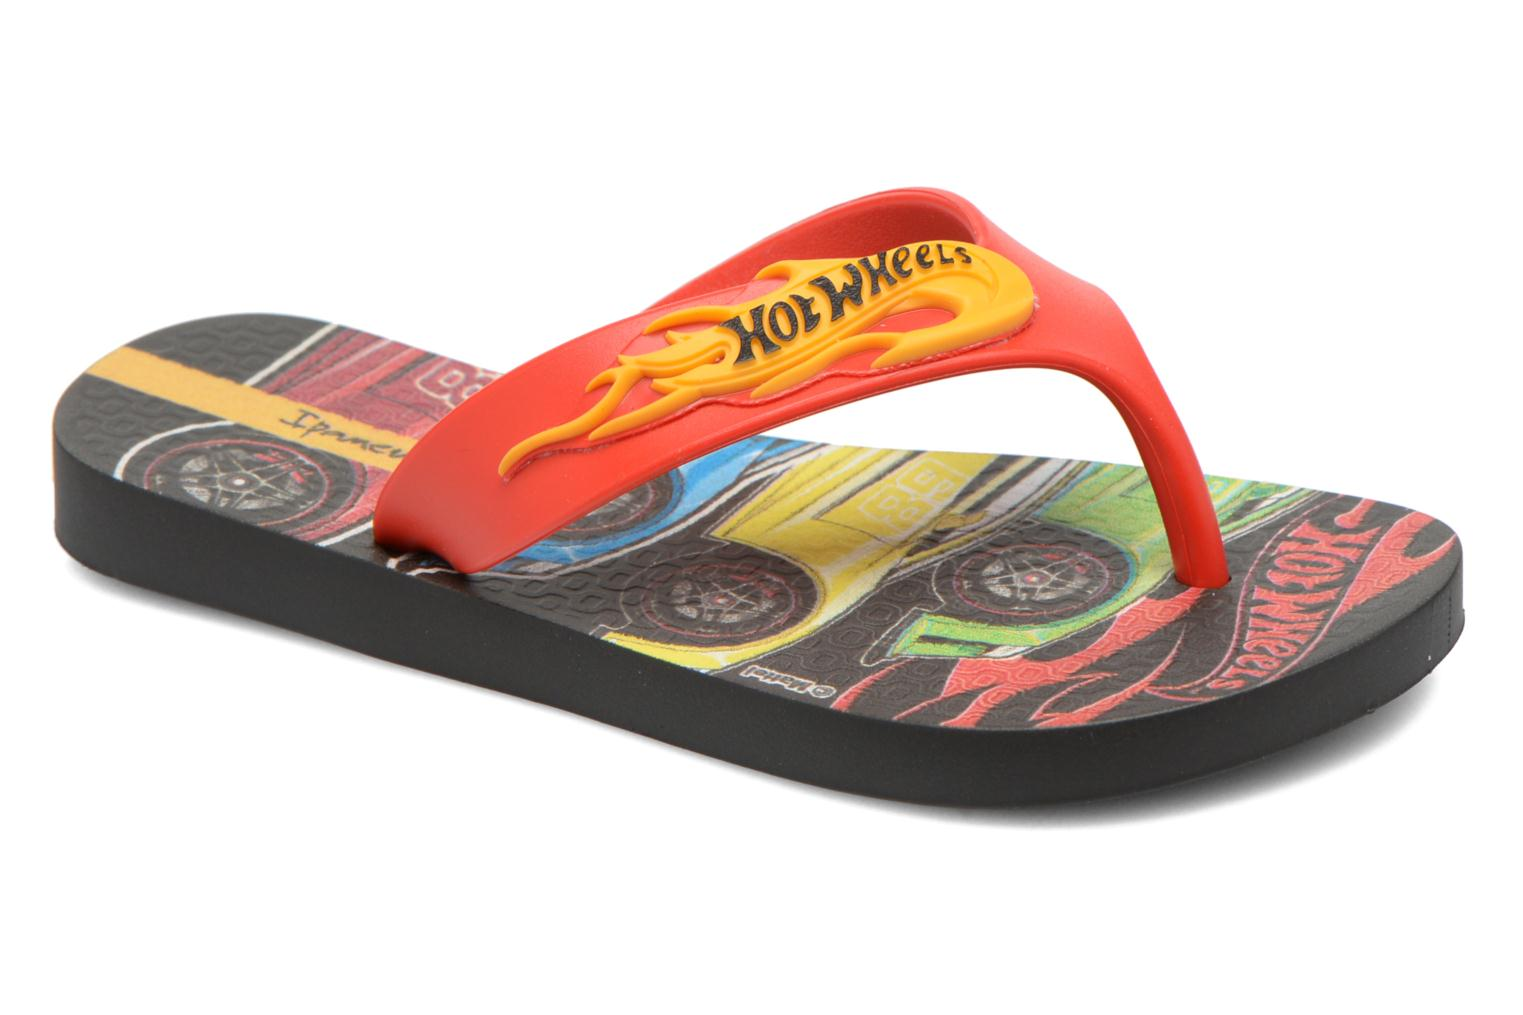 Chanclas Ipanema Hot Wheels Tyre Kids Multicolor vista de detalle / par